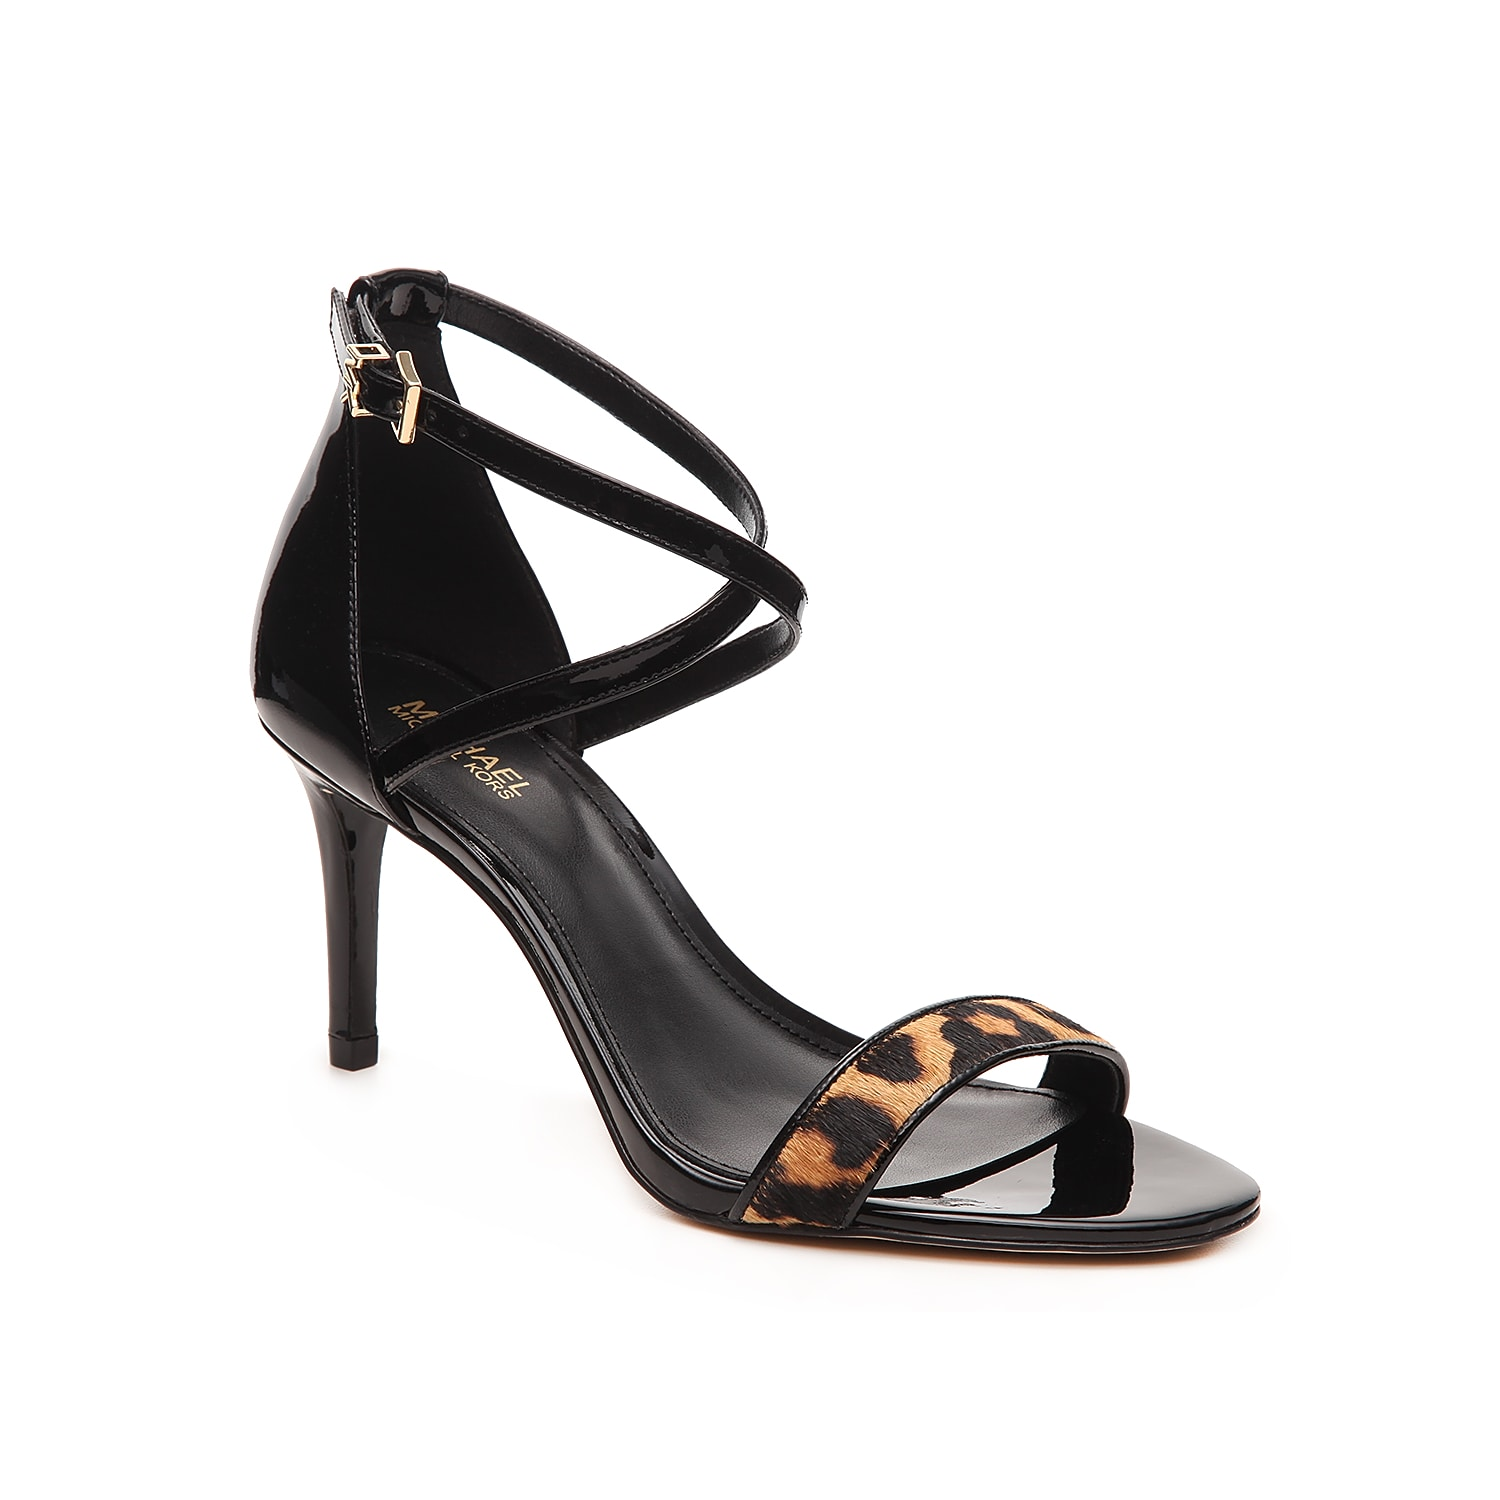 Simple, barely-there styling makes the Ava sandal from Michael Michael Kors endlessly fashionable. The pop of animal print instantly dresses up your favorite date-night Lbd.